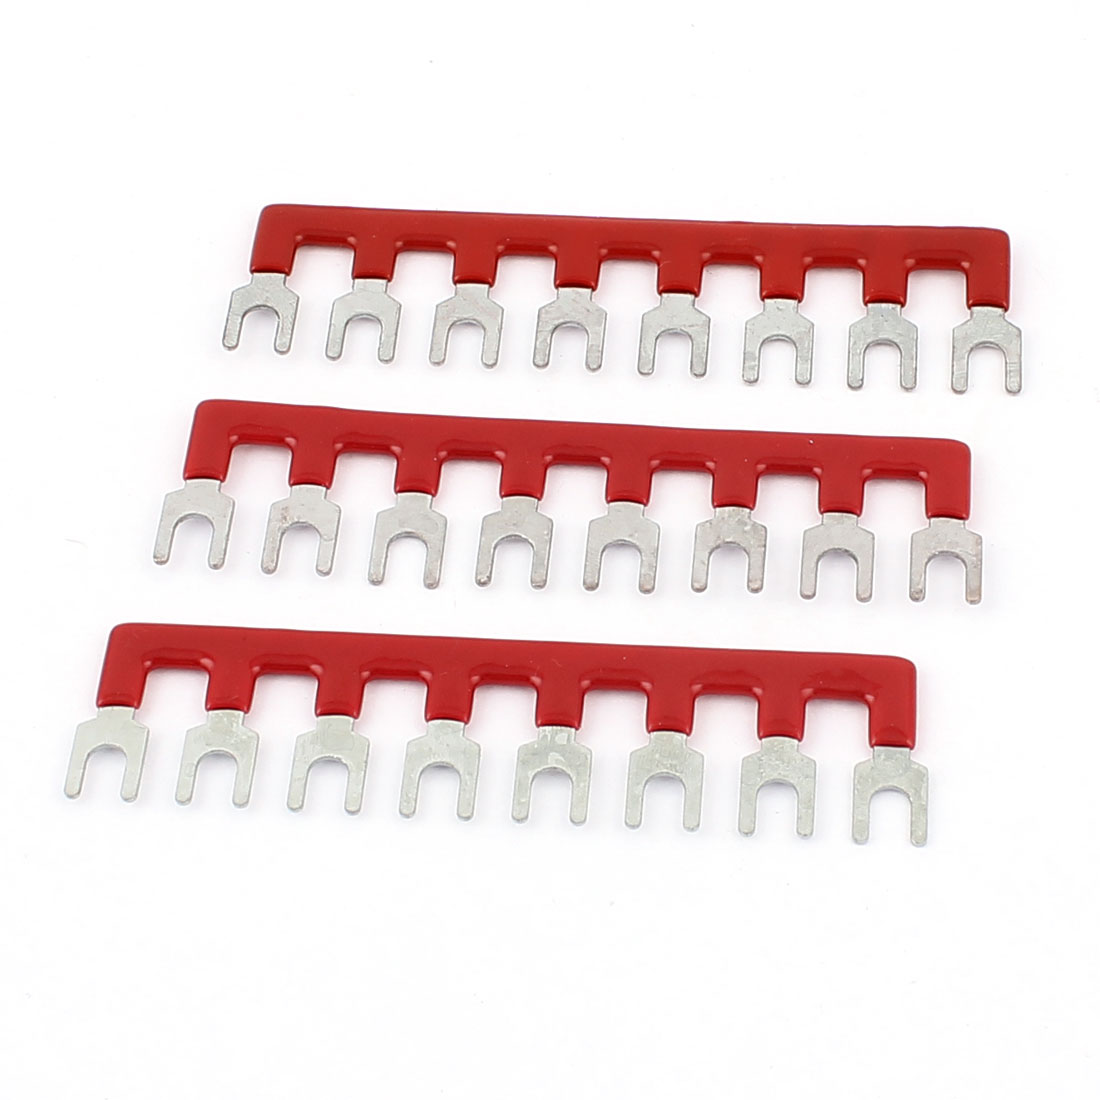 3Pcs TB2508 Fork Type 8 Position Pre Insulated Terminal Strip Jumper Connector Red 600V 25A